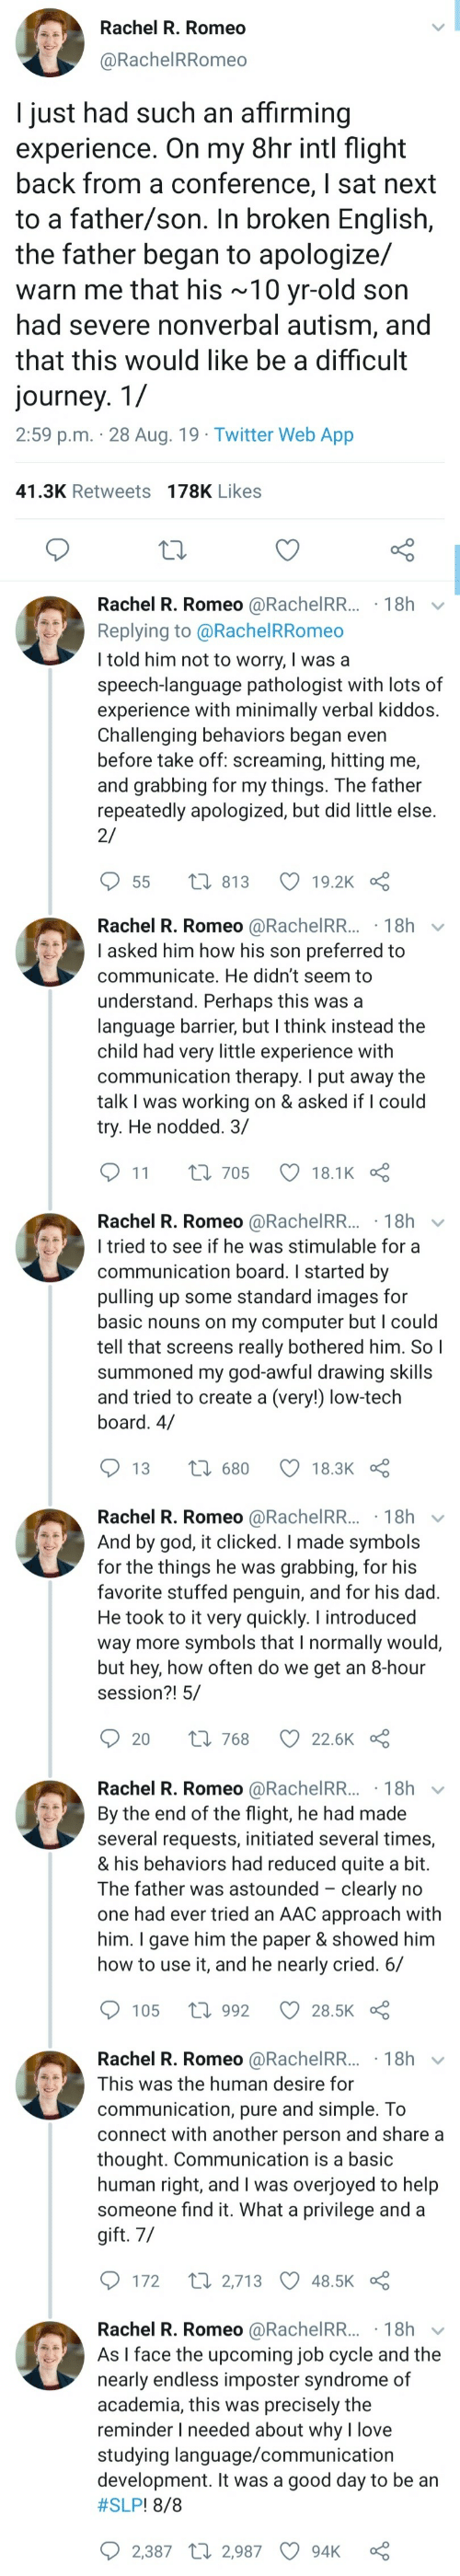 syndrome: Rachel R. Romeo  @RachelRRomeo  I just had such an affirming  experience. On my 8hr intl flight  back from a conference, I sat next  to a father/son. In broken English,  the father began to apologize/  warn me that his ~10 yr-old son  had severe nonverbal autism, and  that this would like be a difficult  journey. 1/  2:59 p.m. 28 Aug. 19 Twitter Web App  41.3K Retweets 178K Likes  Rachel R. Romeo @RachelRR... 18h  Replying to @Rachel RRomeo  I told him not to worry, I was a  speech-language pathologist with lots of  experience with minimally verbal kiddos.  Challenging behaviors began even  before take off: screaming, hitting me,  and grabbing for my things. The father  repeatedly apologized, but did little else  2/  t 813  19.2K  55   Rachel R. Romeo @RachelRR...18h  I asked him how his son preferred to  communicate. He didn't seem to  understand. Perhaps this was a  language barrier, but I think instead the  child had very little experience with  communication therapy. I put away the  talk I was working on & asked if I could  try. He nodded. 3/  11  L 705  18.1K  Rachel R. Romeo @RachelRR... 18h  I tried to see if he was stimulable for a  communication board. I started by  pulling up some standard images for  basic nouns on my computer but I could  tell that screens really bothered him. So I  summoned my god-awful drawing skills  and tried to create a (very!) low-tech  board. 4/  1680  13  18.3K  Rachel R. Romeo @RachelRR... 18h  And by god, it clicked. I made symbols  for the things he was  favorite stuffed penguin, and for his dad.  He took to it very quickly. I introduced  way more symbols that I normally would,  but hey, how often do we get an 8-hour  session?! 5/  grabbing, for his  Li 768  20  22.6K   Rachel R. Romeo @RachelRR... 18h  By the end of the flight, he had made  several requests, initiated several times,  & his behaviors had reduced quite a bit.  The father was astounded clearly no  one had ever tried an AAC approach with  him. I gave him the paper & showed him  how to use it, and he nearly cried. 6/  1992  105  28.5K  Rachel R. Romeo @RachelRR... 18h  This was the human desire for  communication, pure and simple. To  connect with another person and share a  thought. Communication is a basic  human right, and I was overjoyed to help  someone find it. What a privilege and a  gift. 7/  t 2,713 48.5K  172  Rachel R. Romeo @RachelRR... 18h  As I face the upcoming job cycle and the  nearly endless imposter syndrome of  academia, this was precisely the  reminder I needed about why l love  studying language/communication  development. It was a good day to be an  #SLP ! 8/8  2,387 2,987  94K